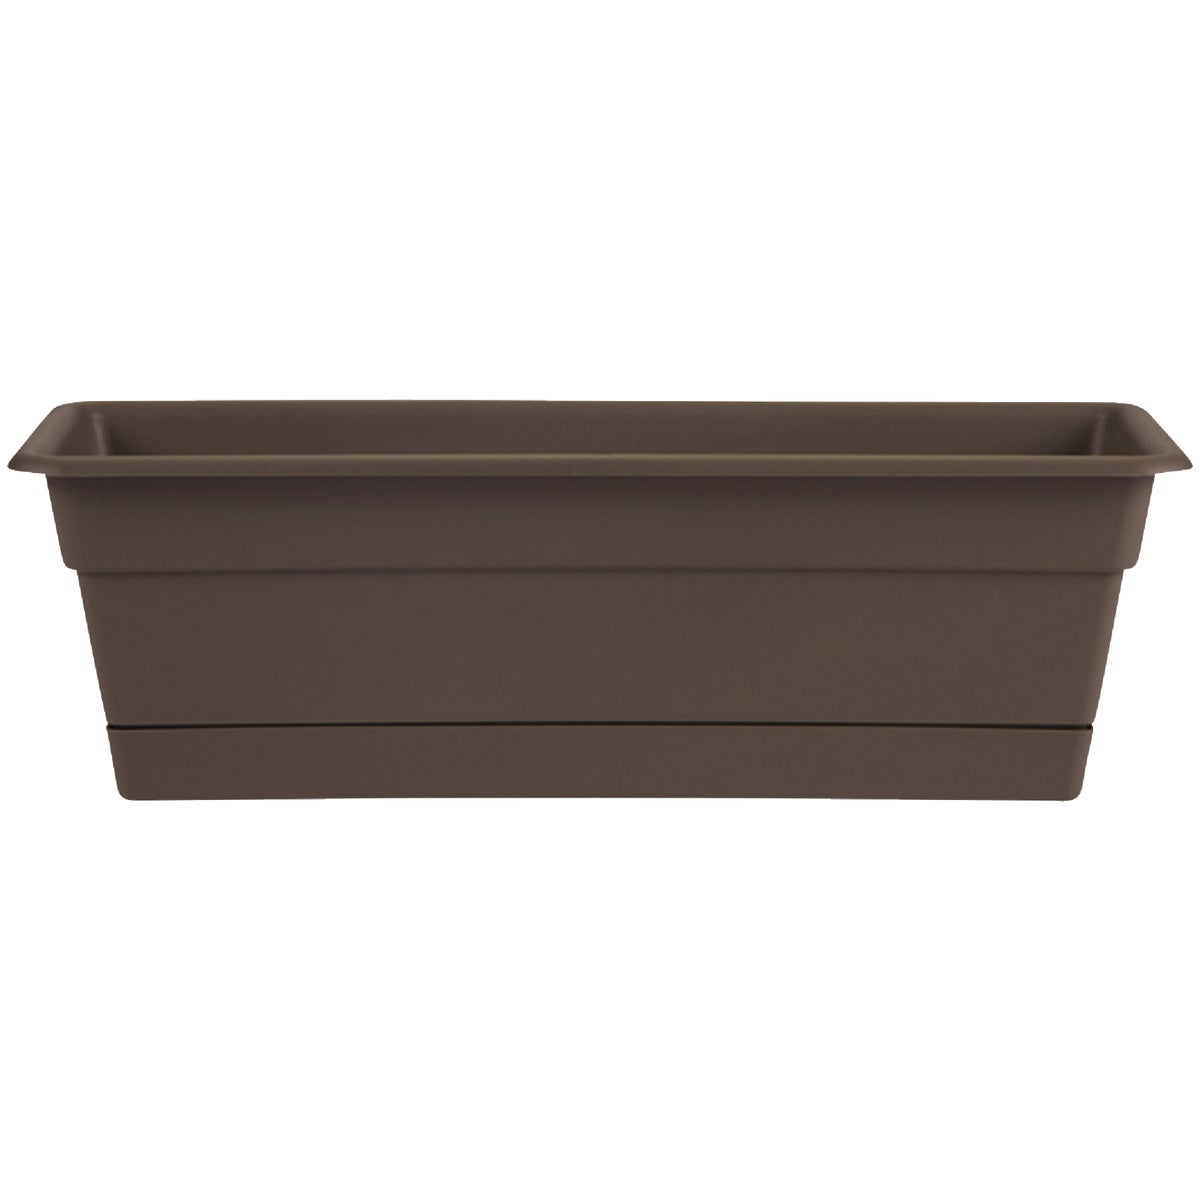 "30"" CHOC WINDOW BOX - MSW30000E21 by Myers Industries Inc"